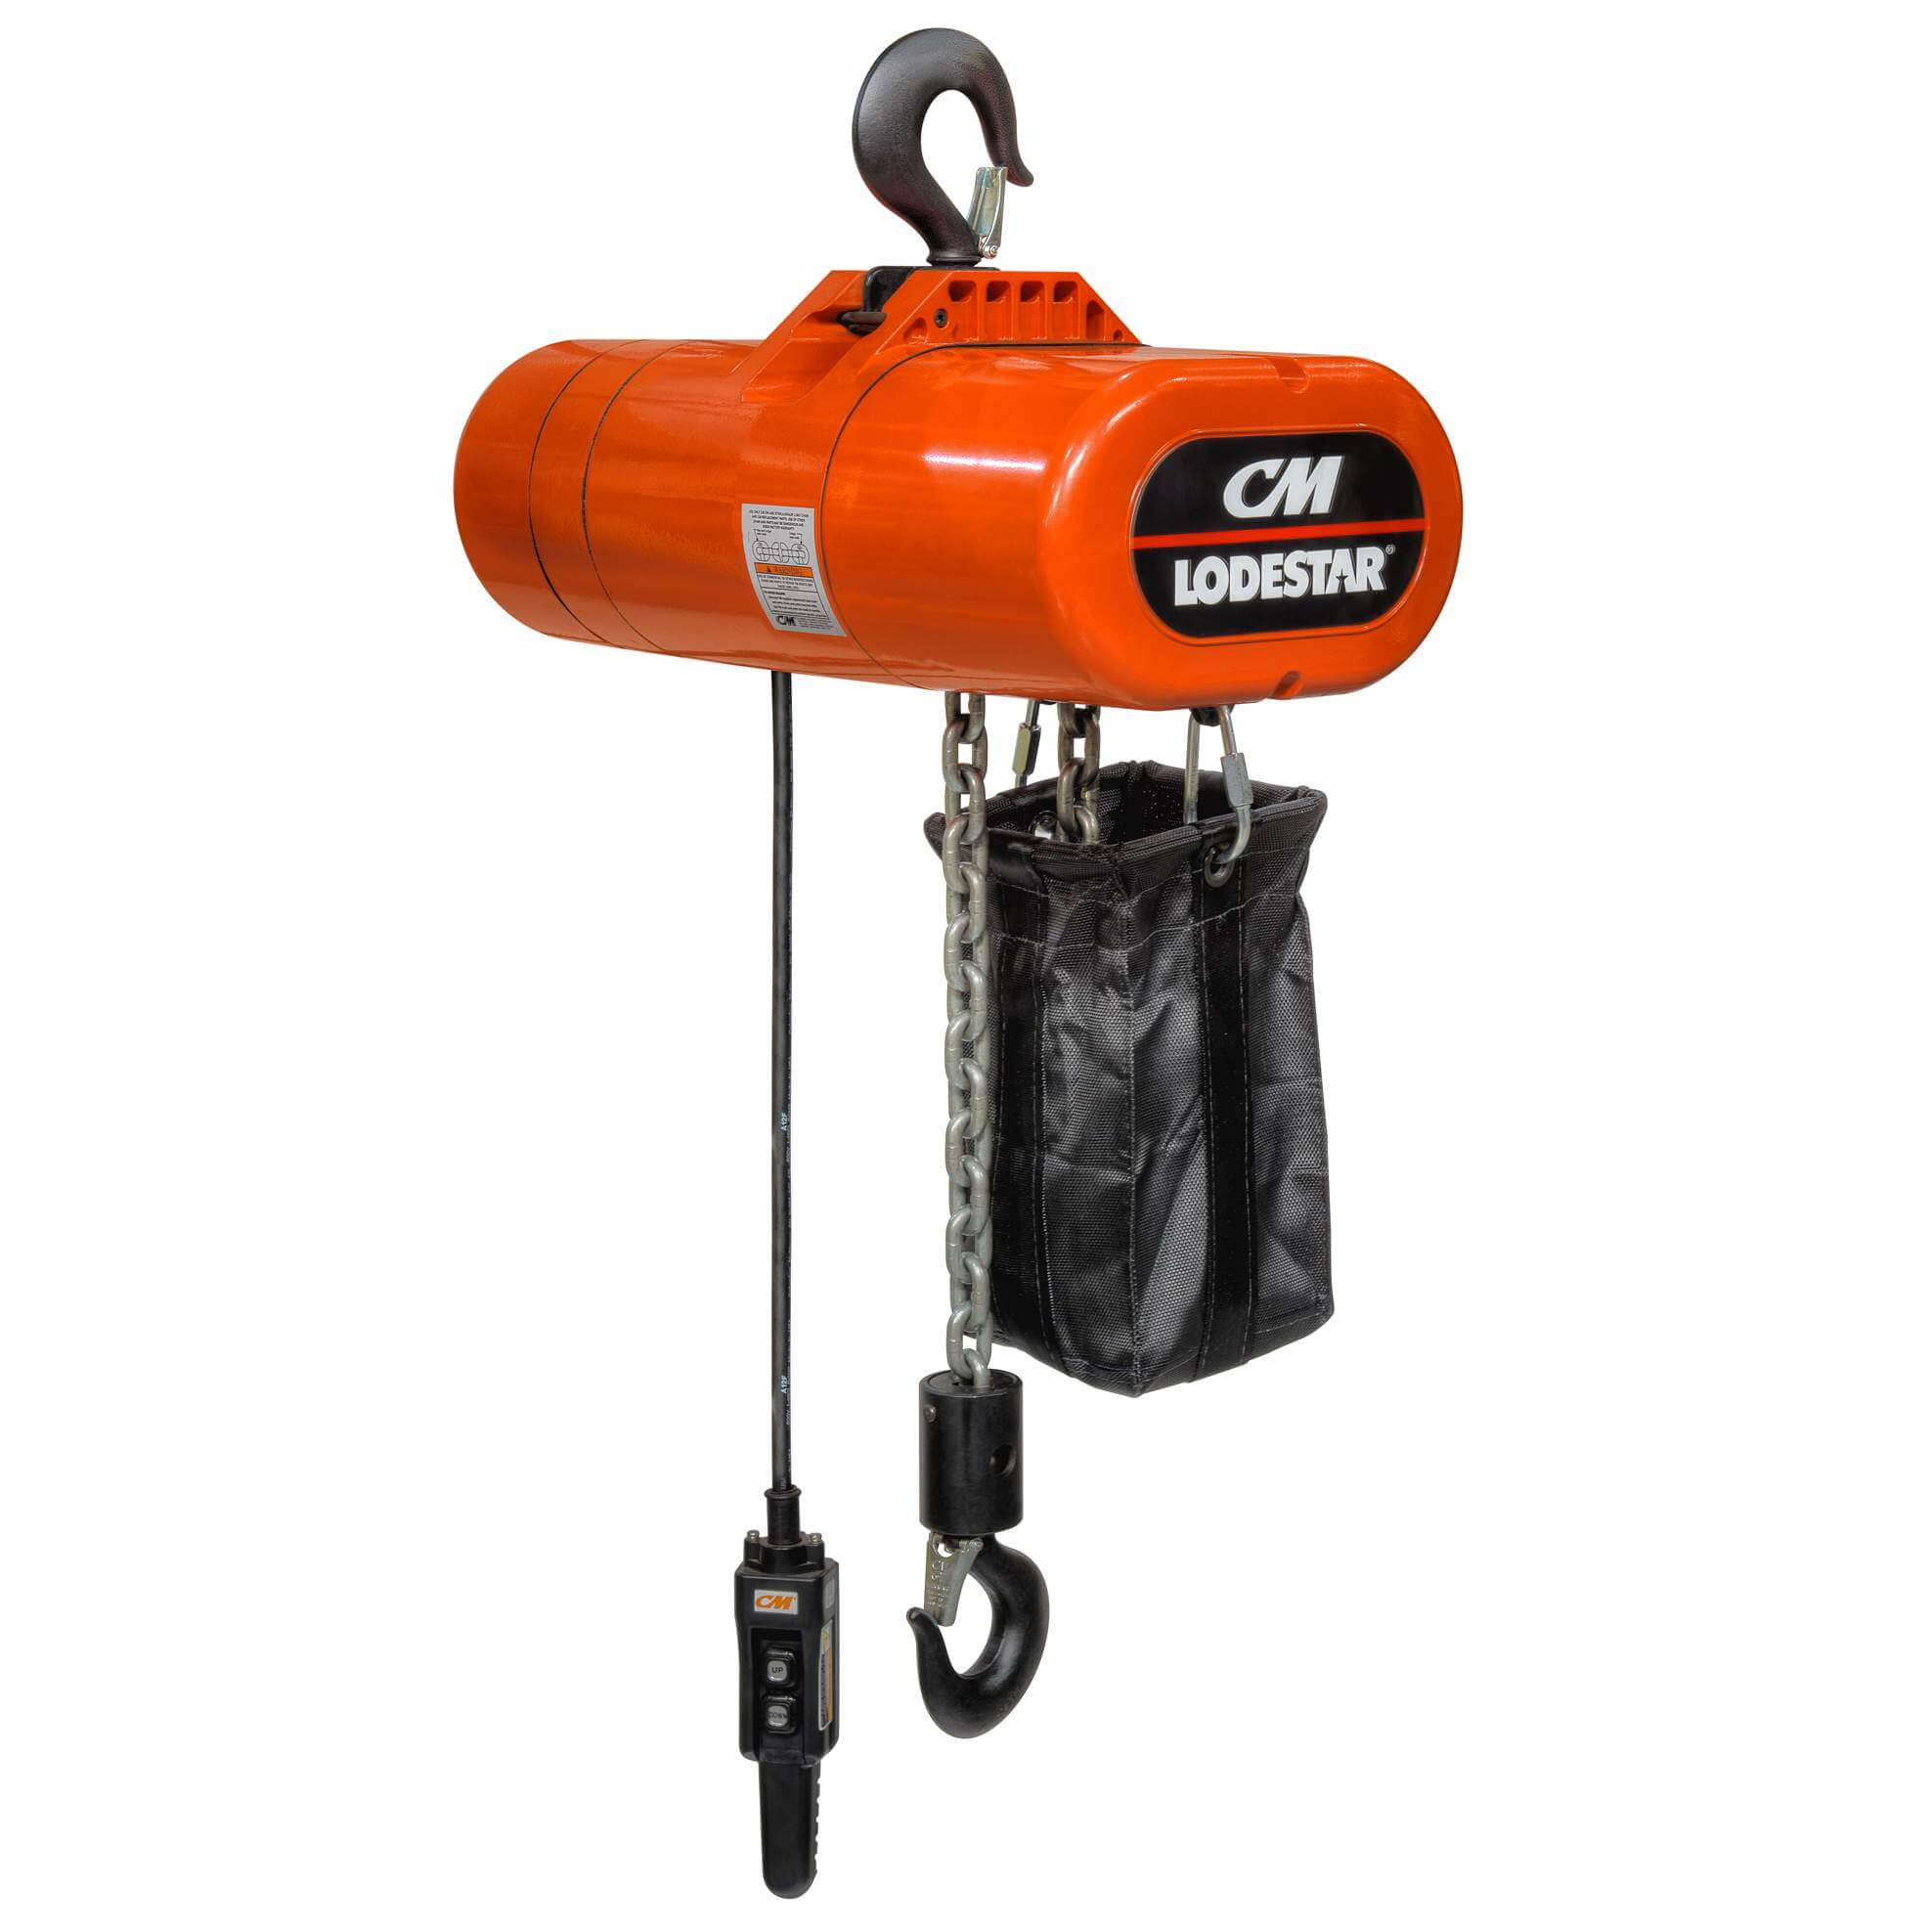 cm lodestar electric chain hoist Ce Hoist Wiring-Diagram